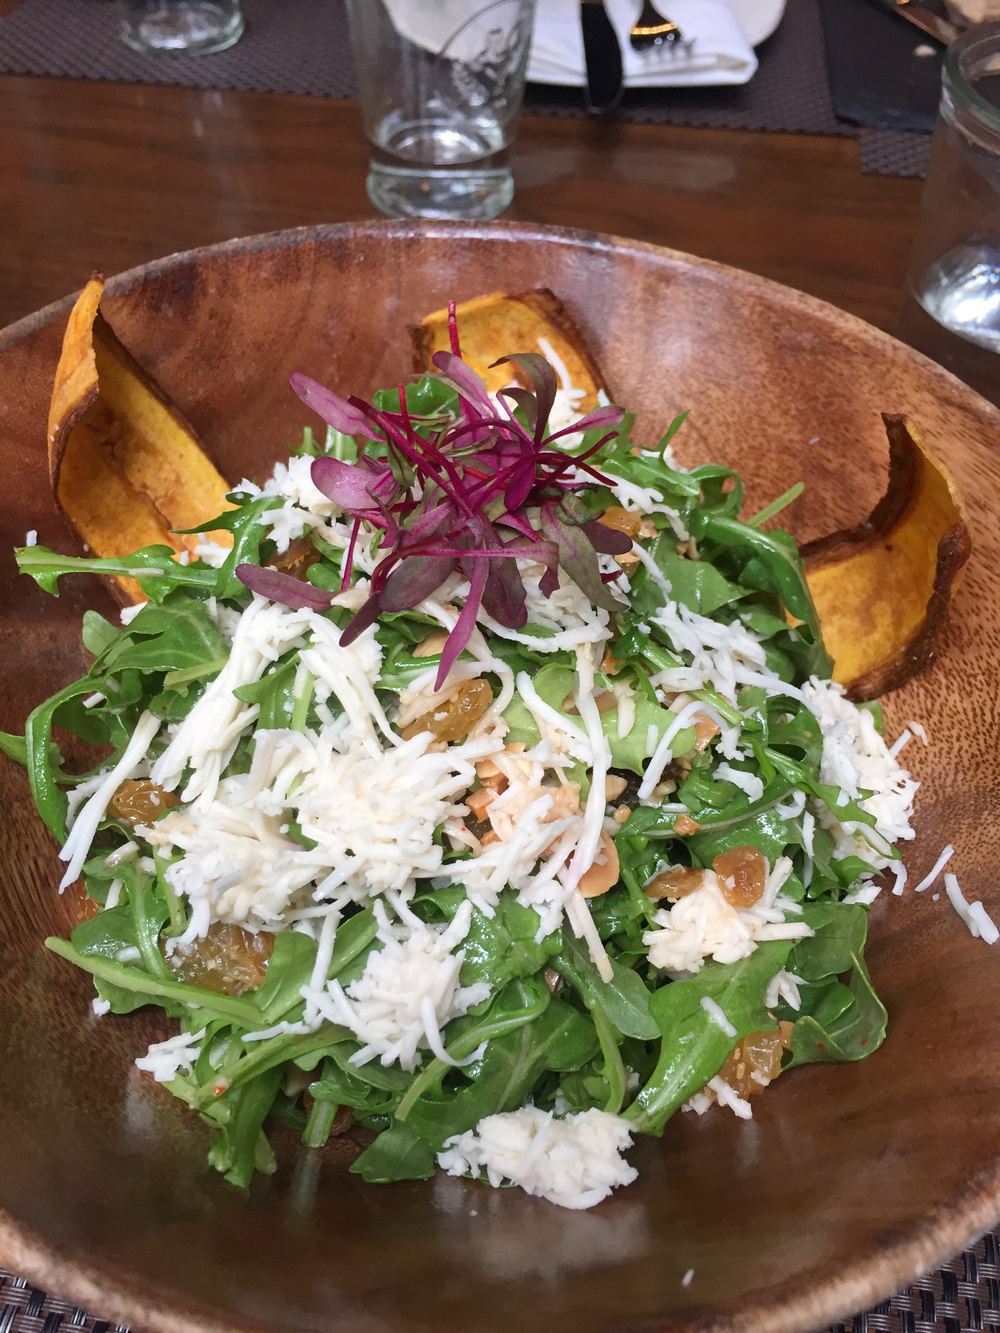 Toca Salad at Toca Madera on The Gilded Bellini